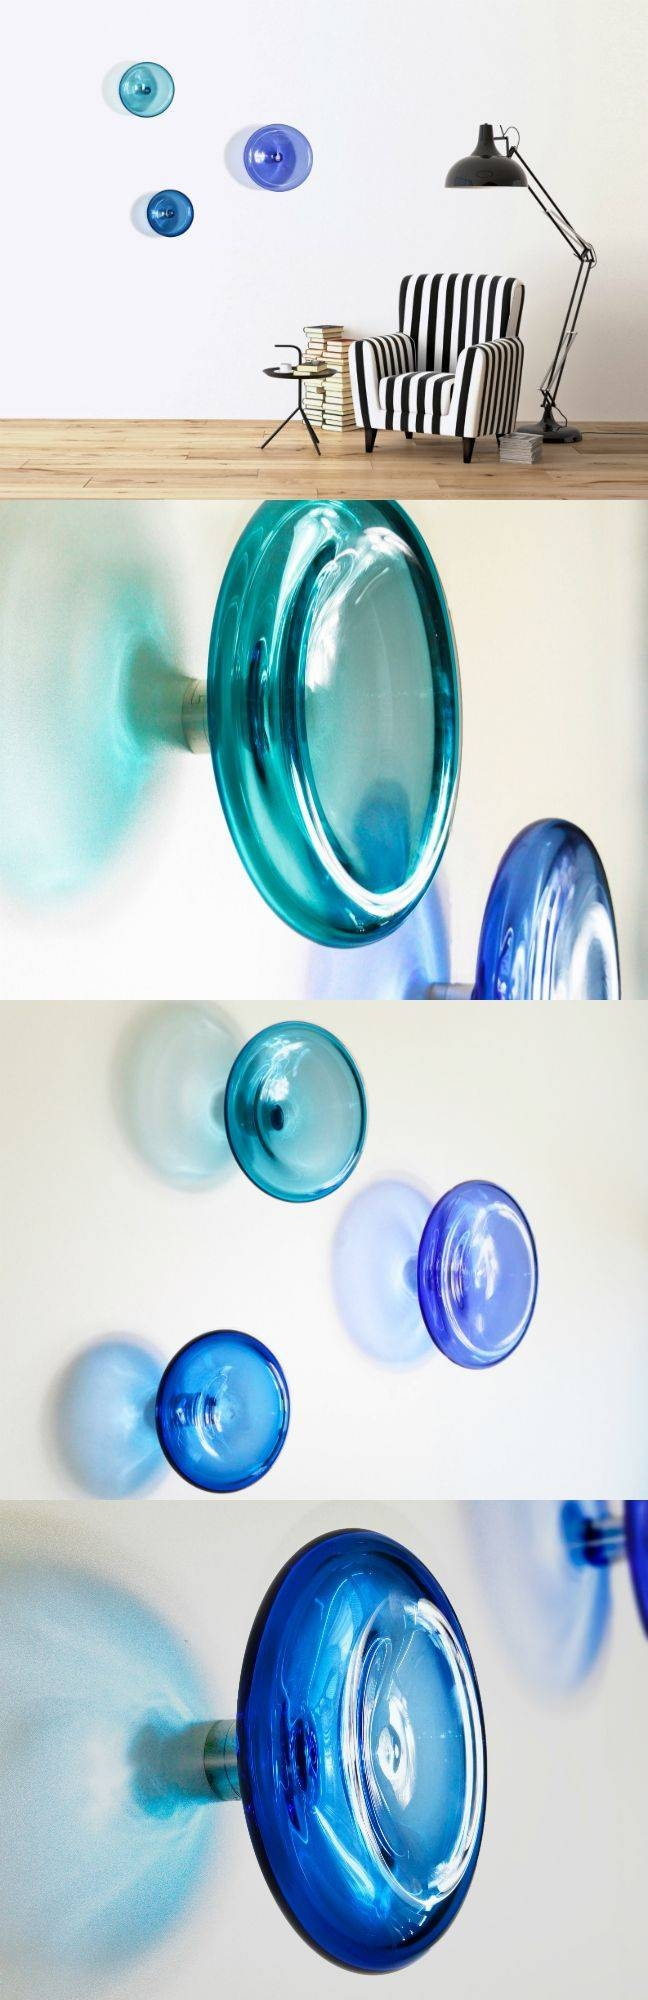 32 Best Glass Wall Art Installations Images On Pinterest | Art Within Current Modern Glass Wall Art (View 15 of 20)